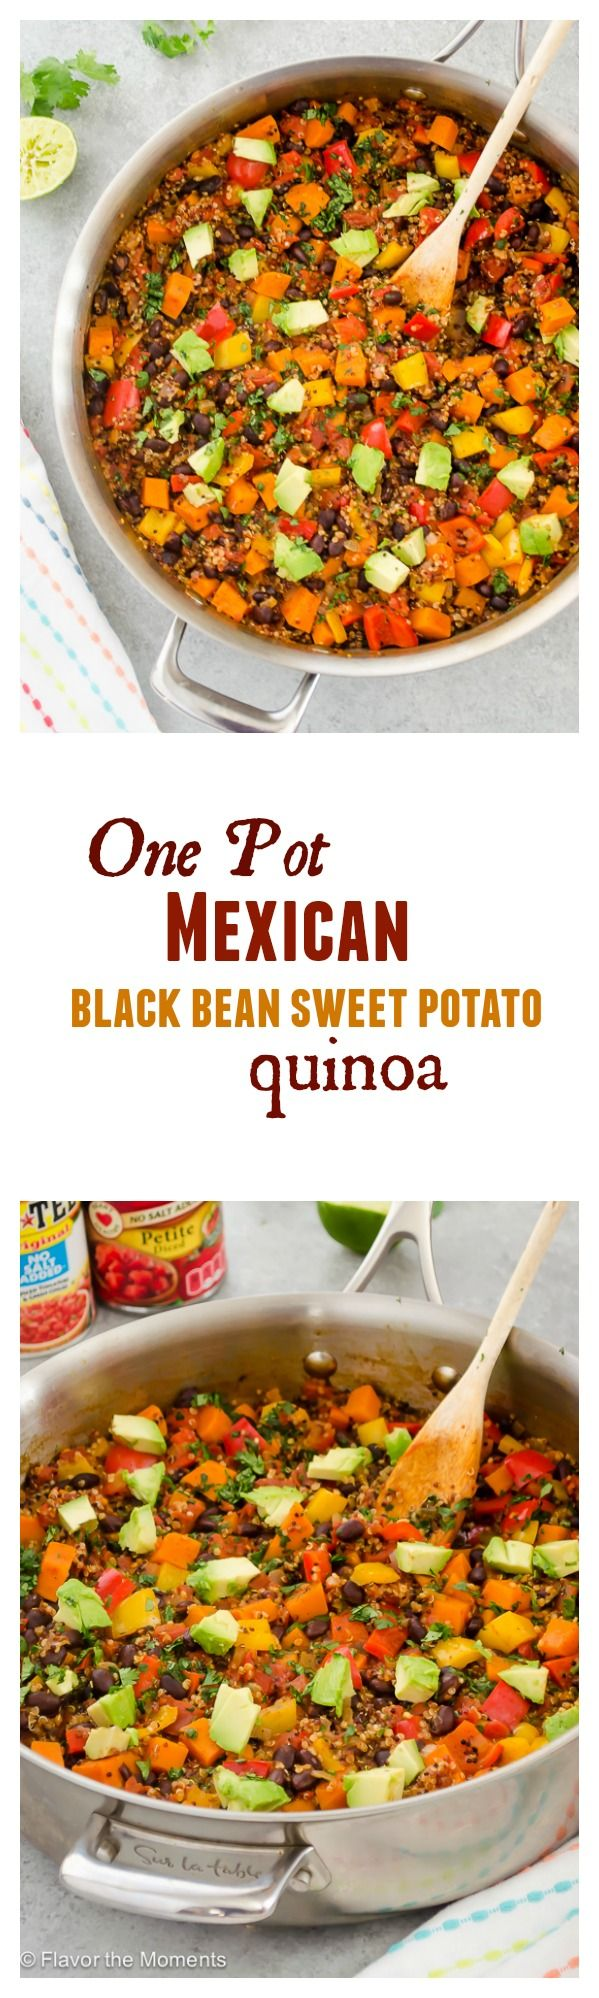 One Pot Mexican Black Bean Sweet Potato Quinoa | flavorthemoments.com